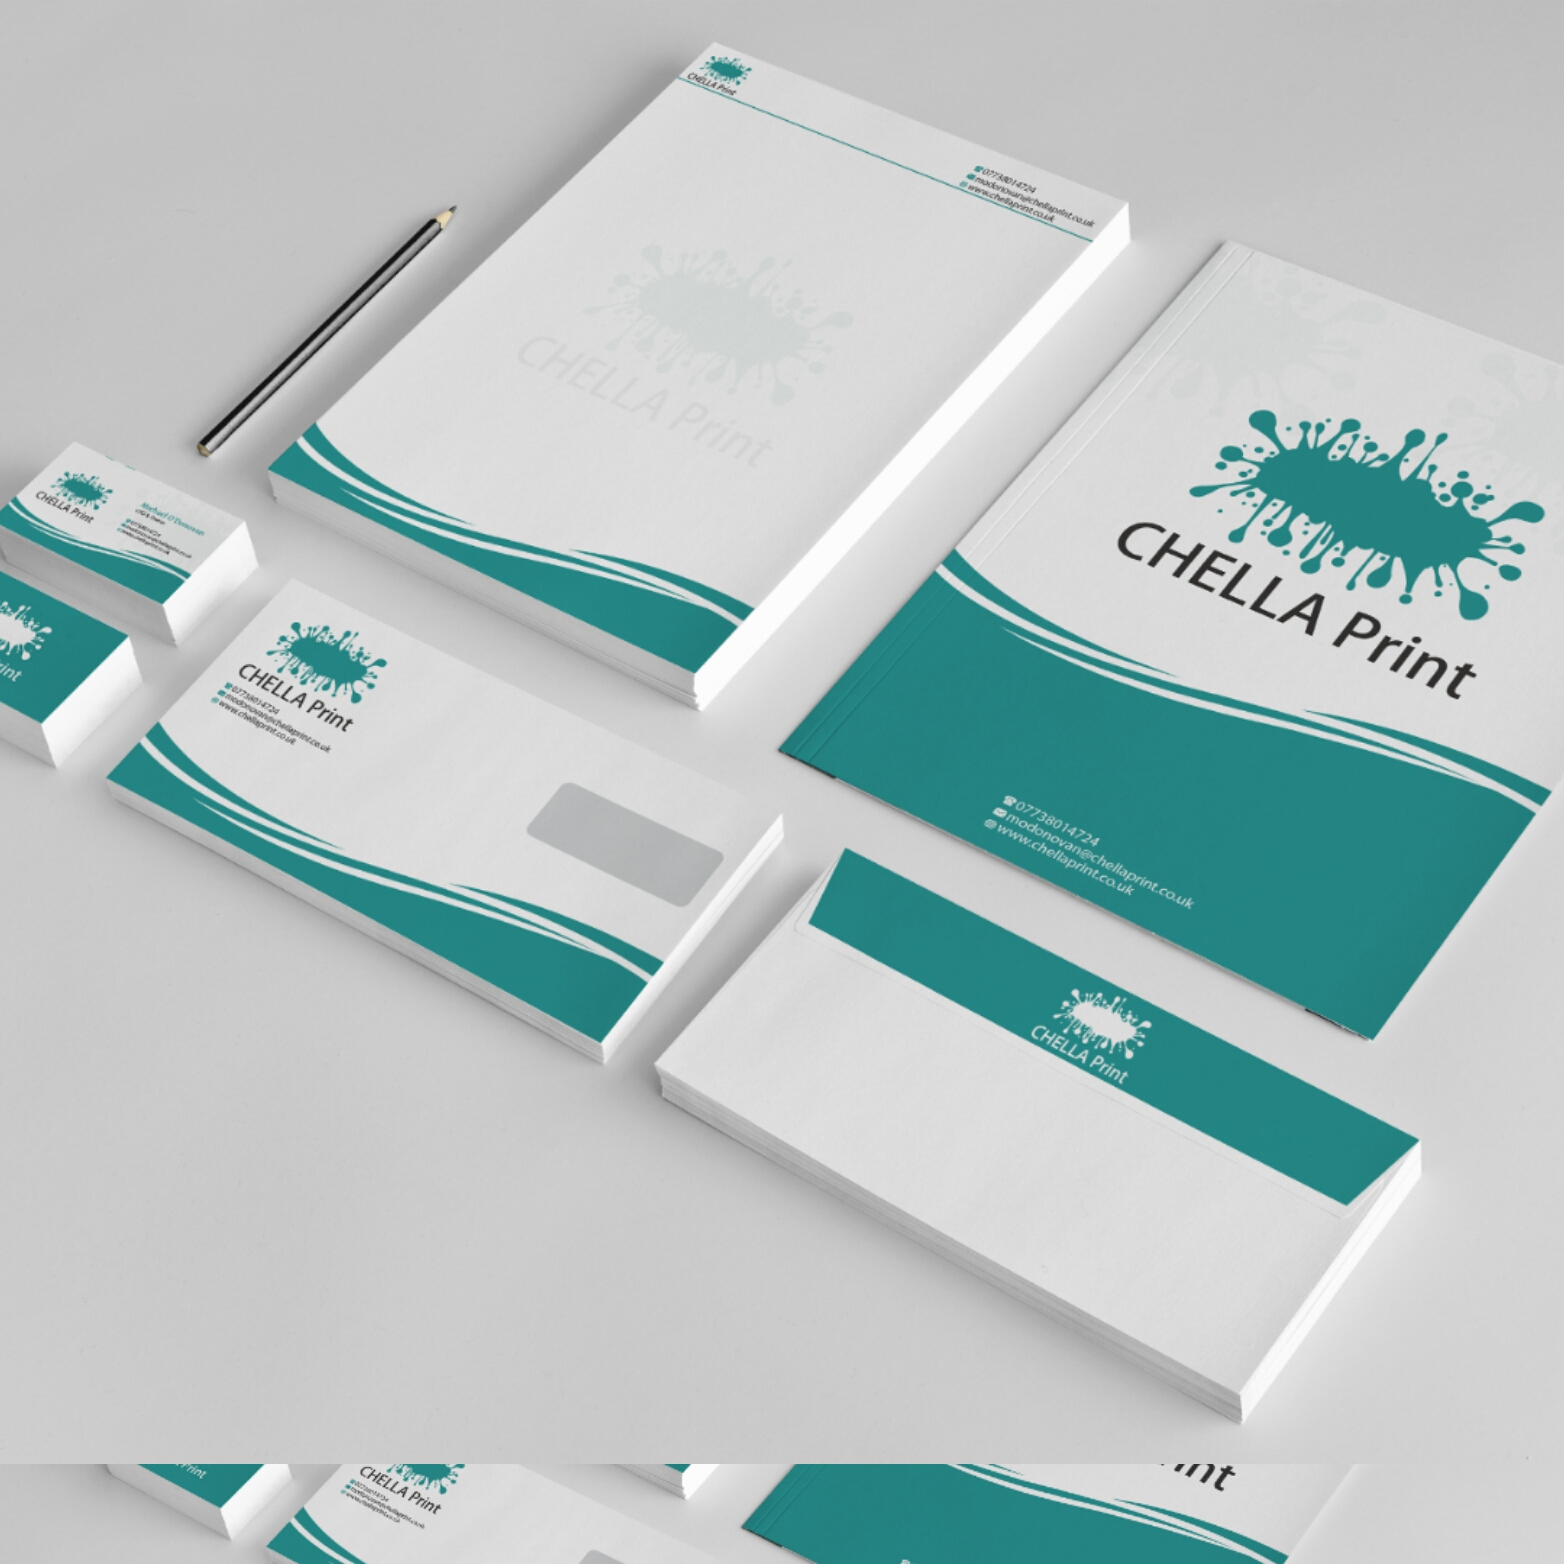 Design Stationery Package